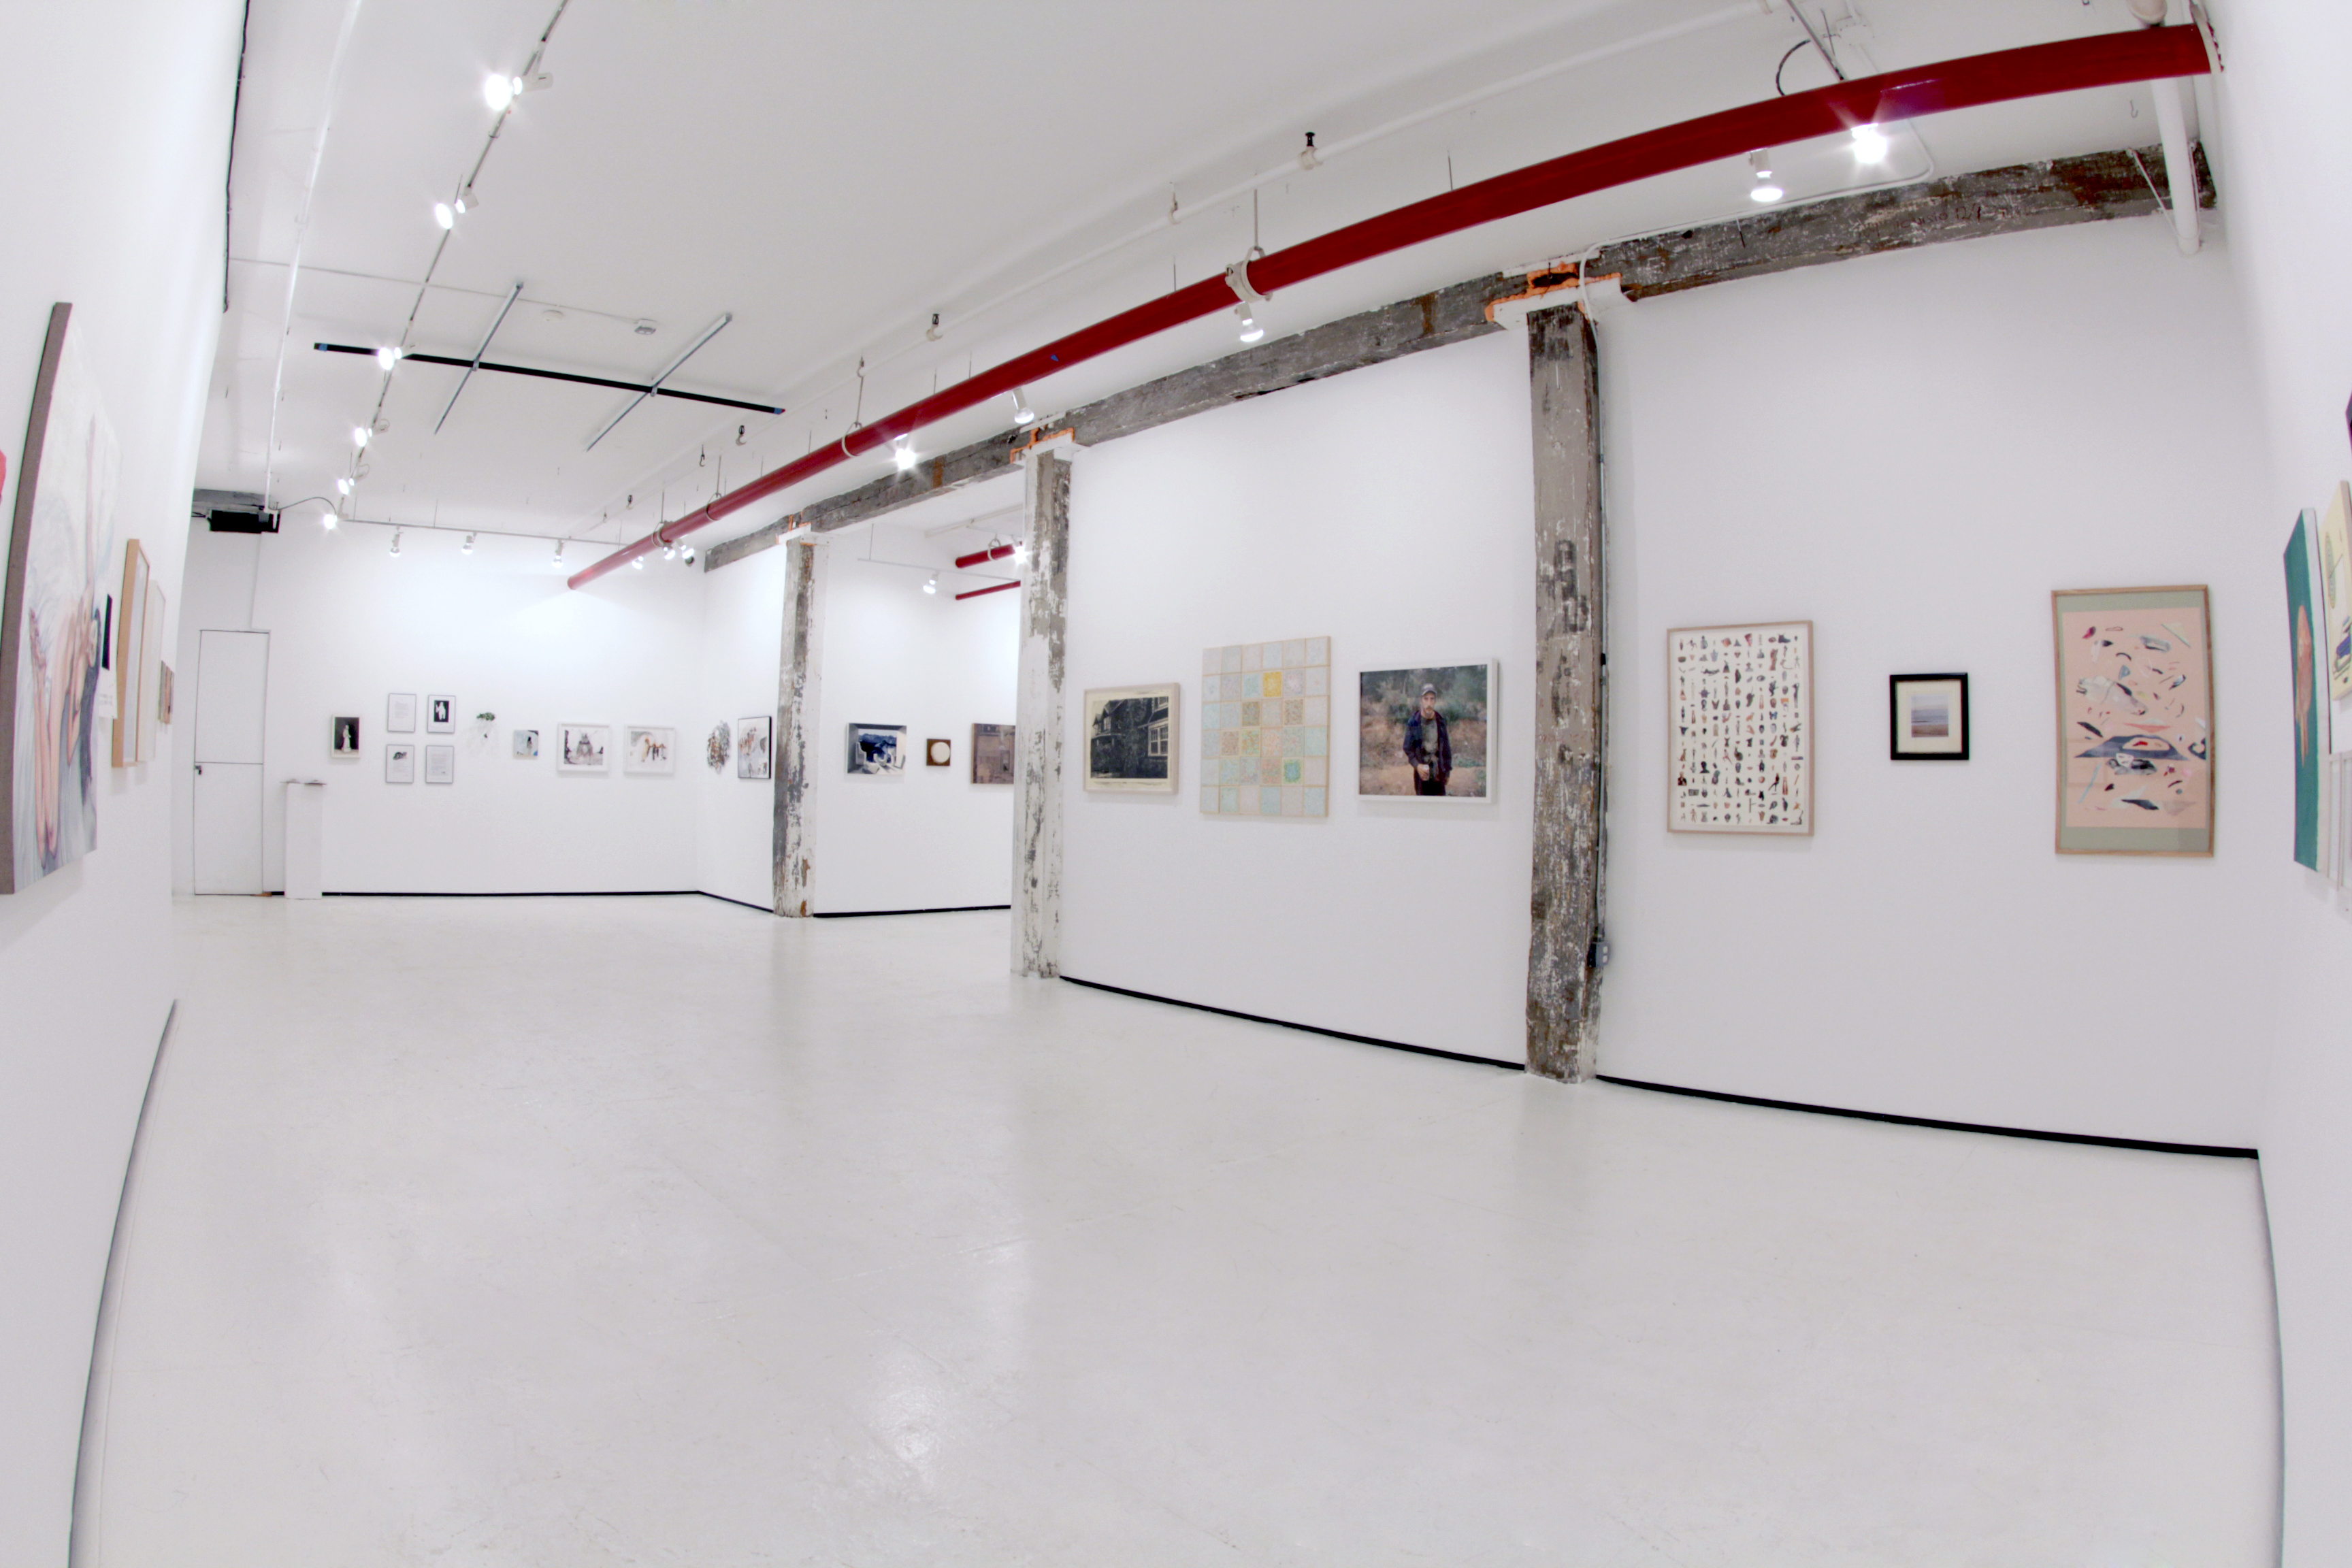 Gallery 105 View #2